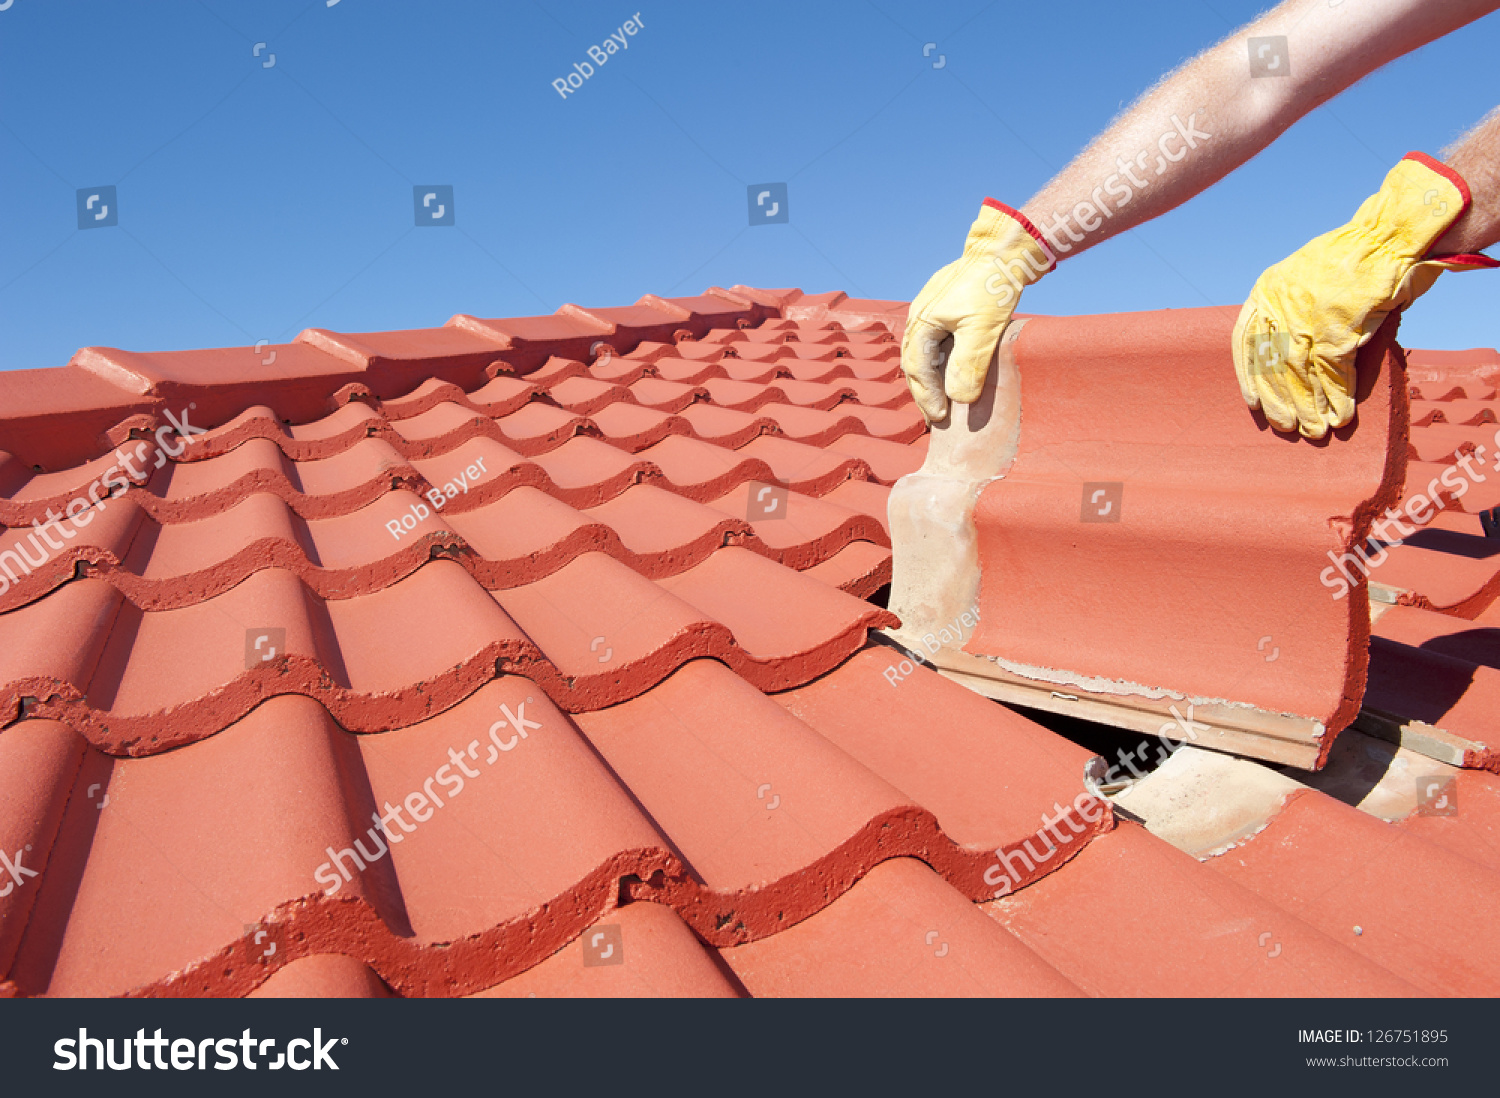 stock-photo-roof-repair-worker-with-yellow-gloves-replacing-red-tiles-or-shingles-on-house-with-blue-sky-as-126751895-1.jpg